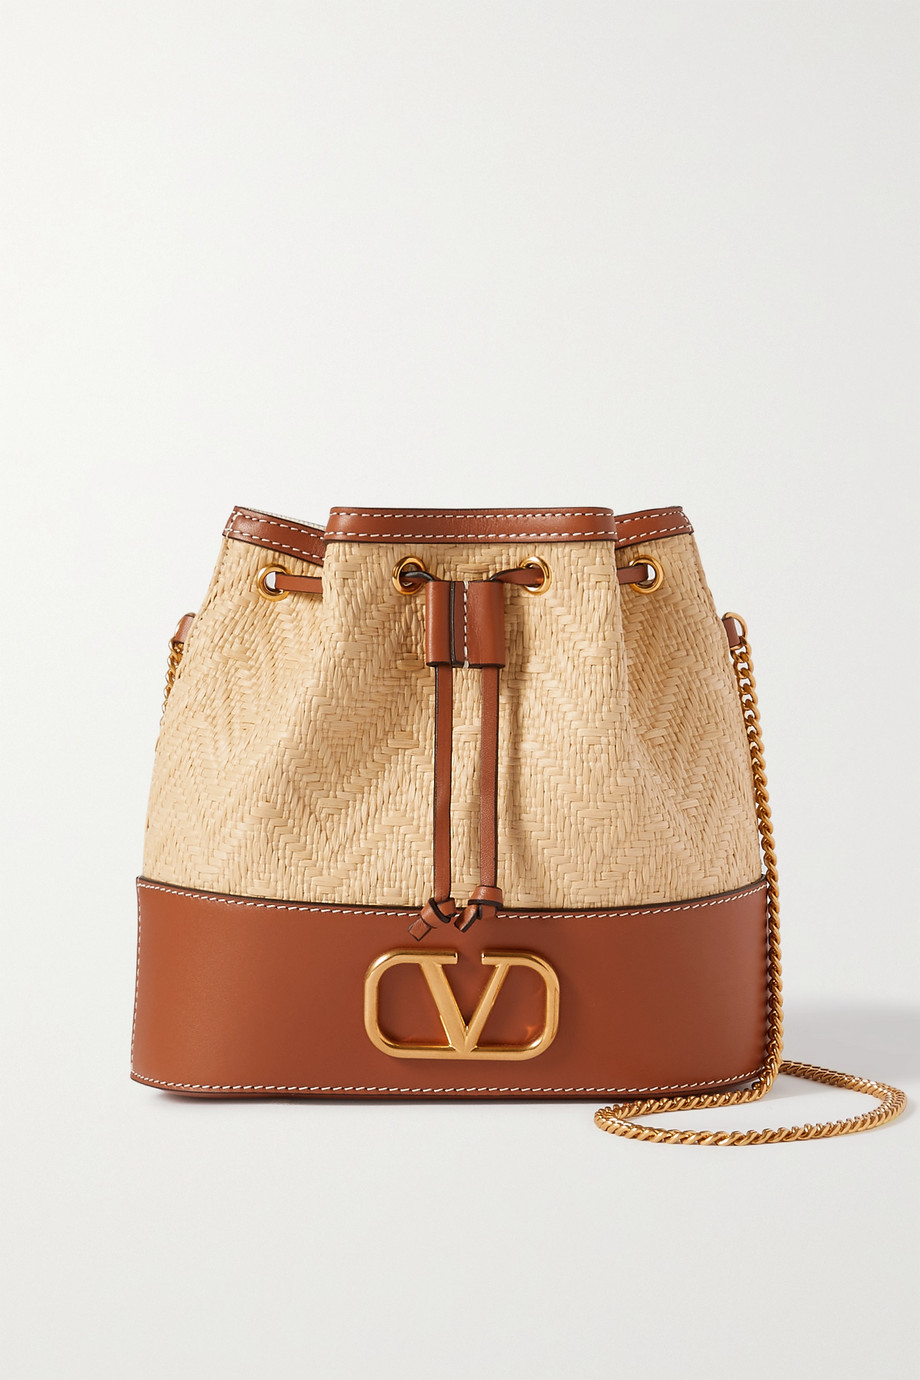 Valentino Valentino Garavani VSLING small leather and raffia bucket bag